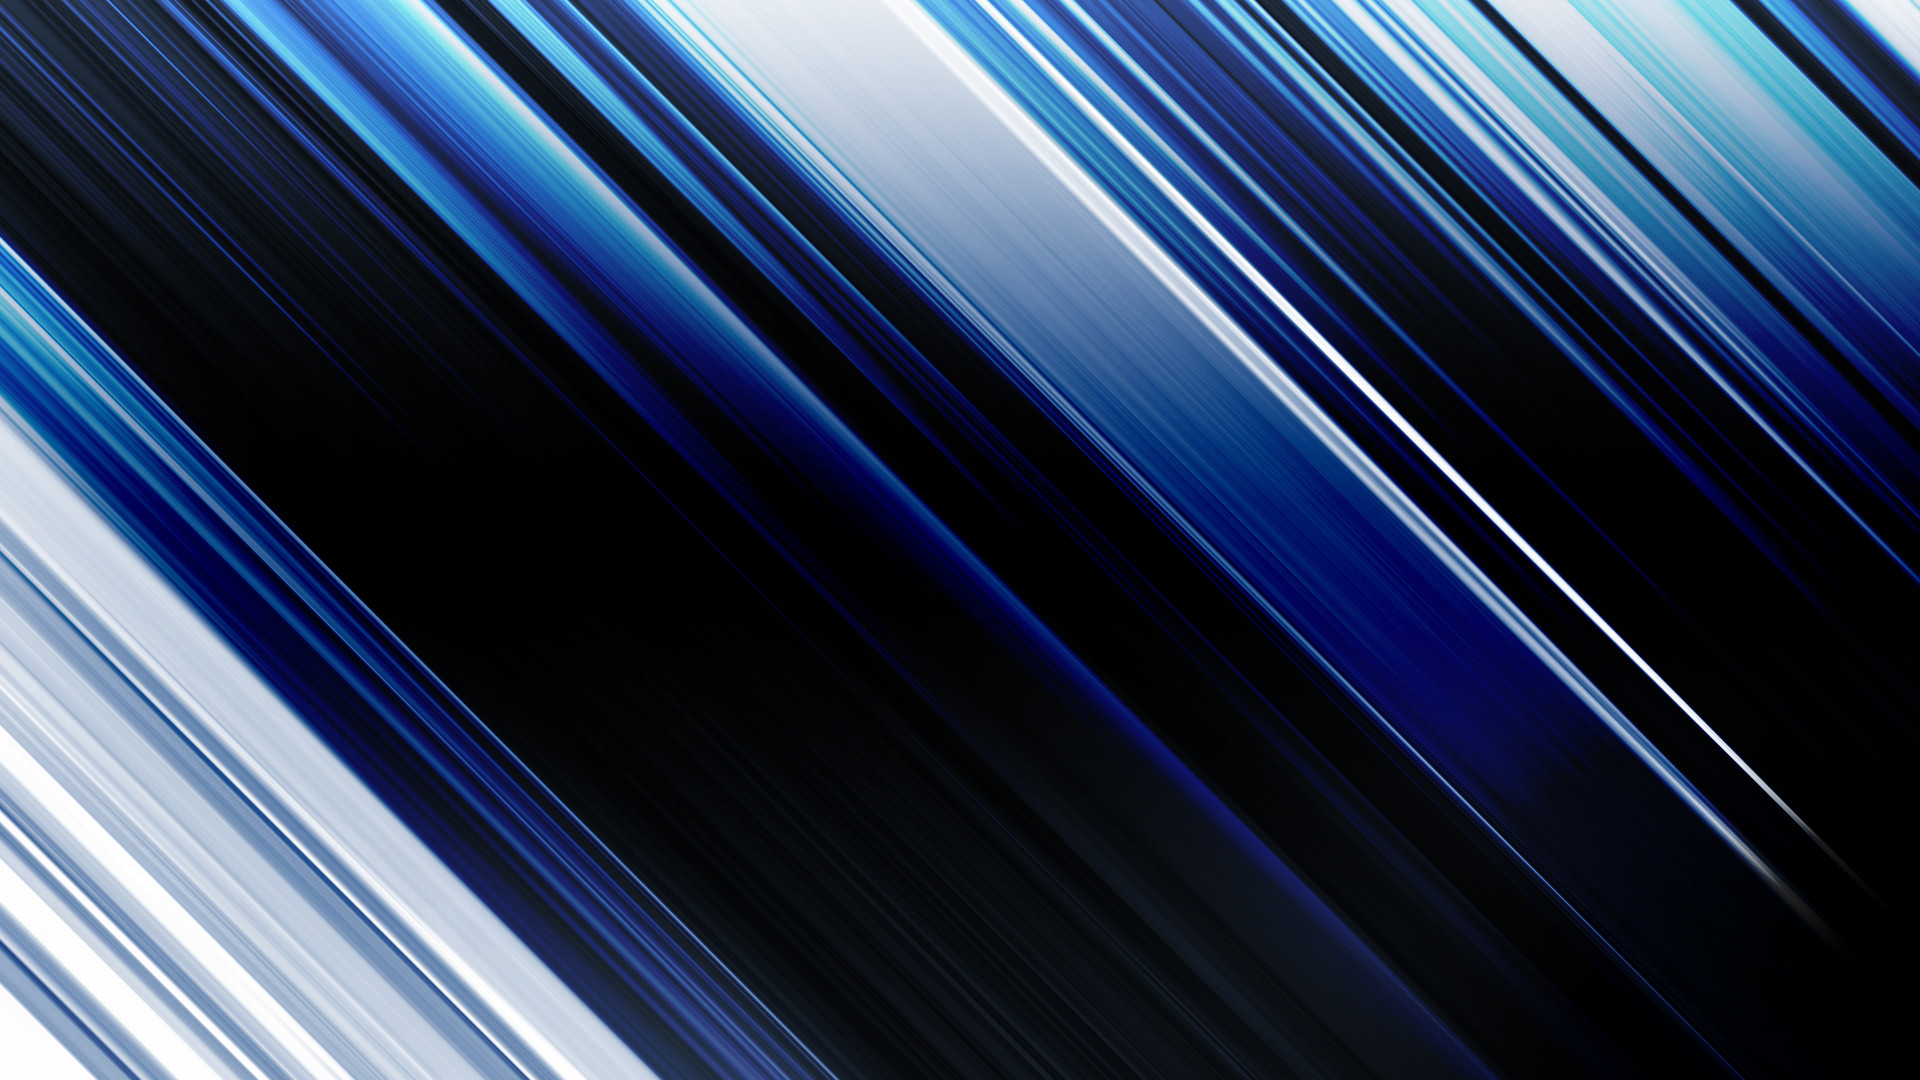 Free Abstract Wallpapers And Screensavers Abstract Wallpaper Laptop .